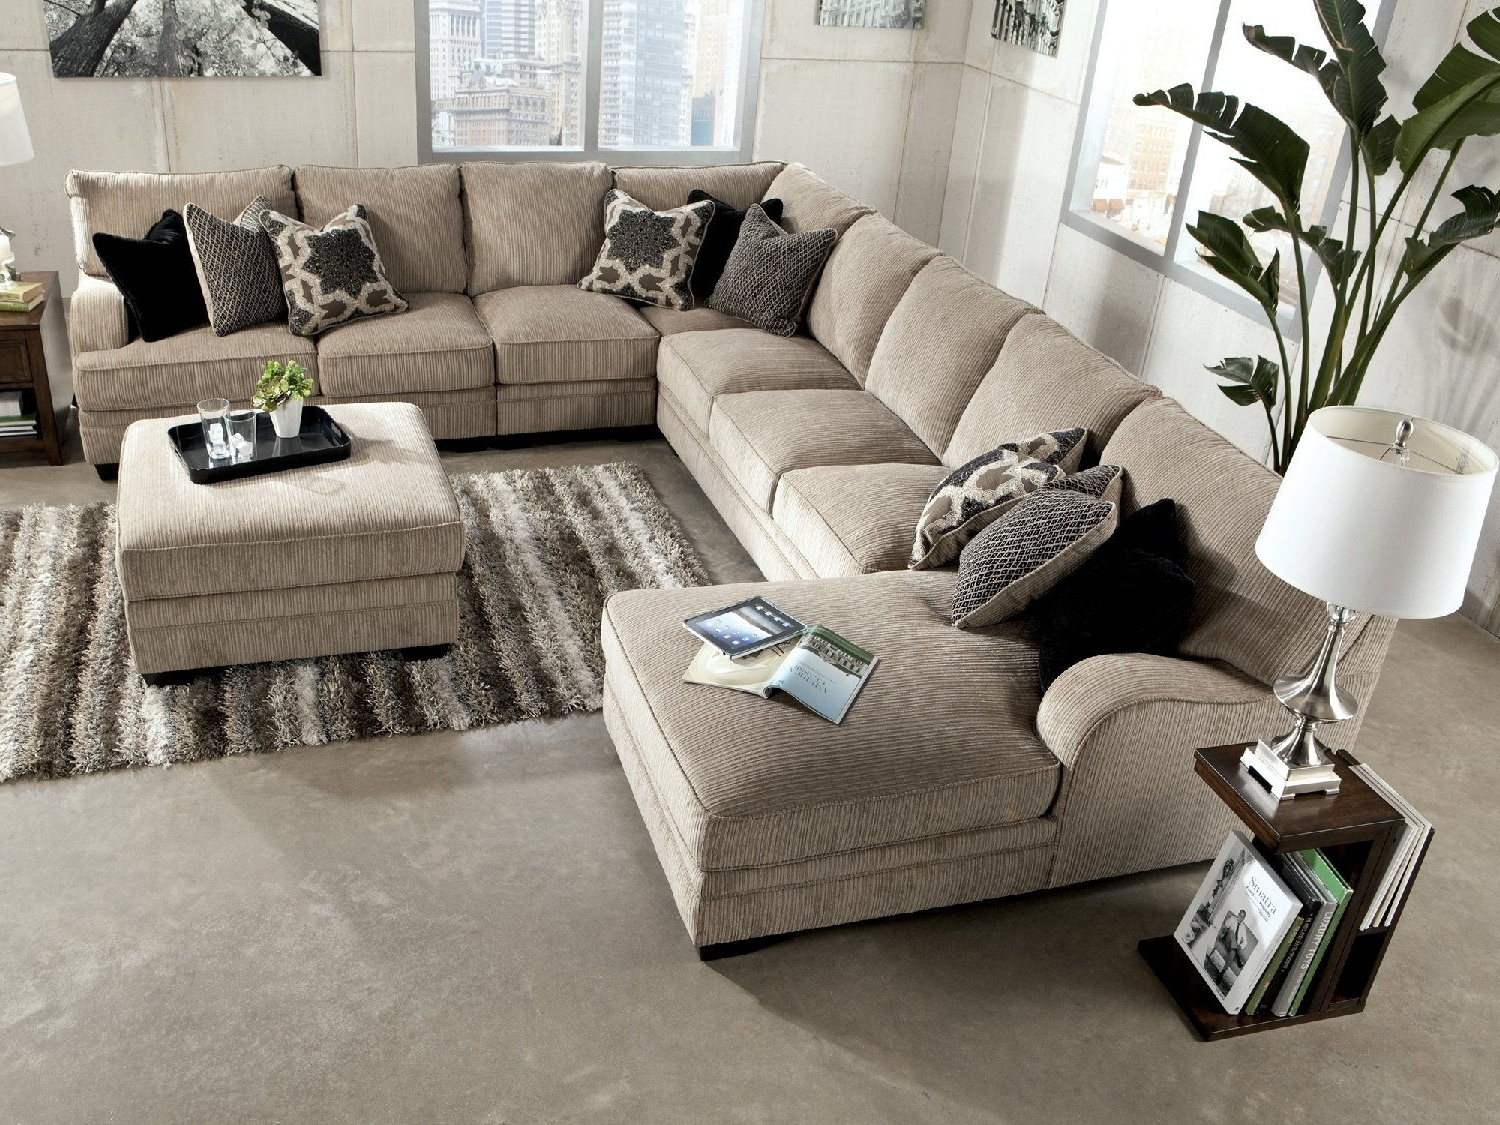 Favorite Fancy Sectional Sofas Mn 36 On Contemporary Sofa Inspiration With With Regard To Mn Sectional Sofas (View 2 of 20)